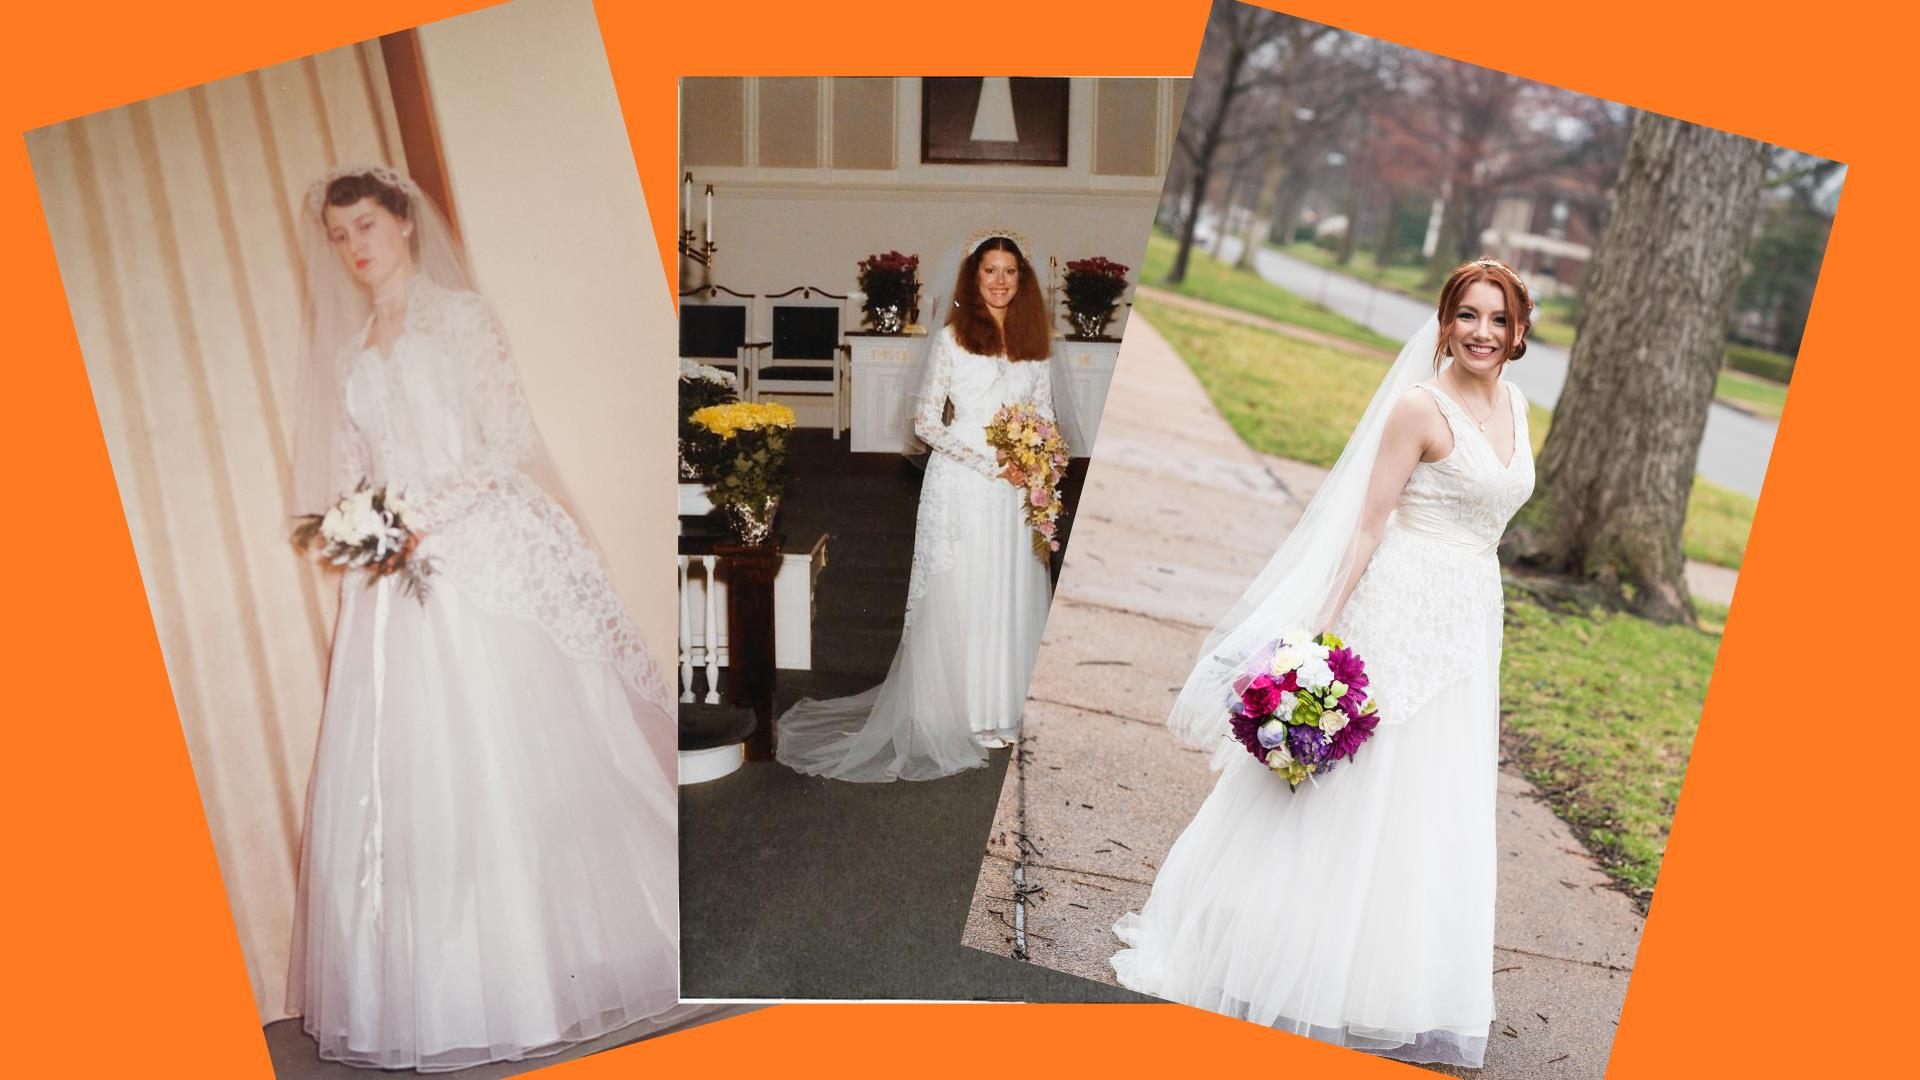 3 Generations Of Women Have Worn This Wedding Dress, But